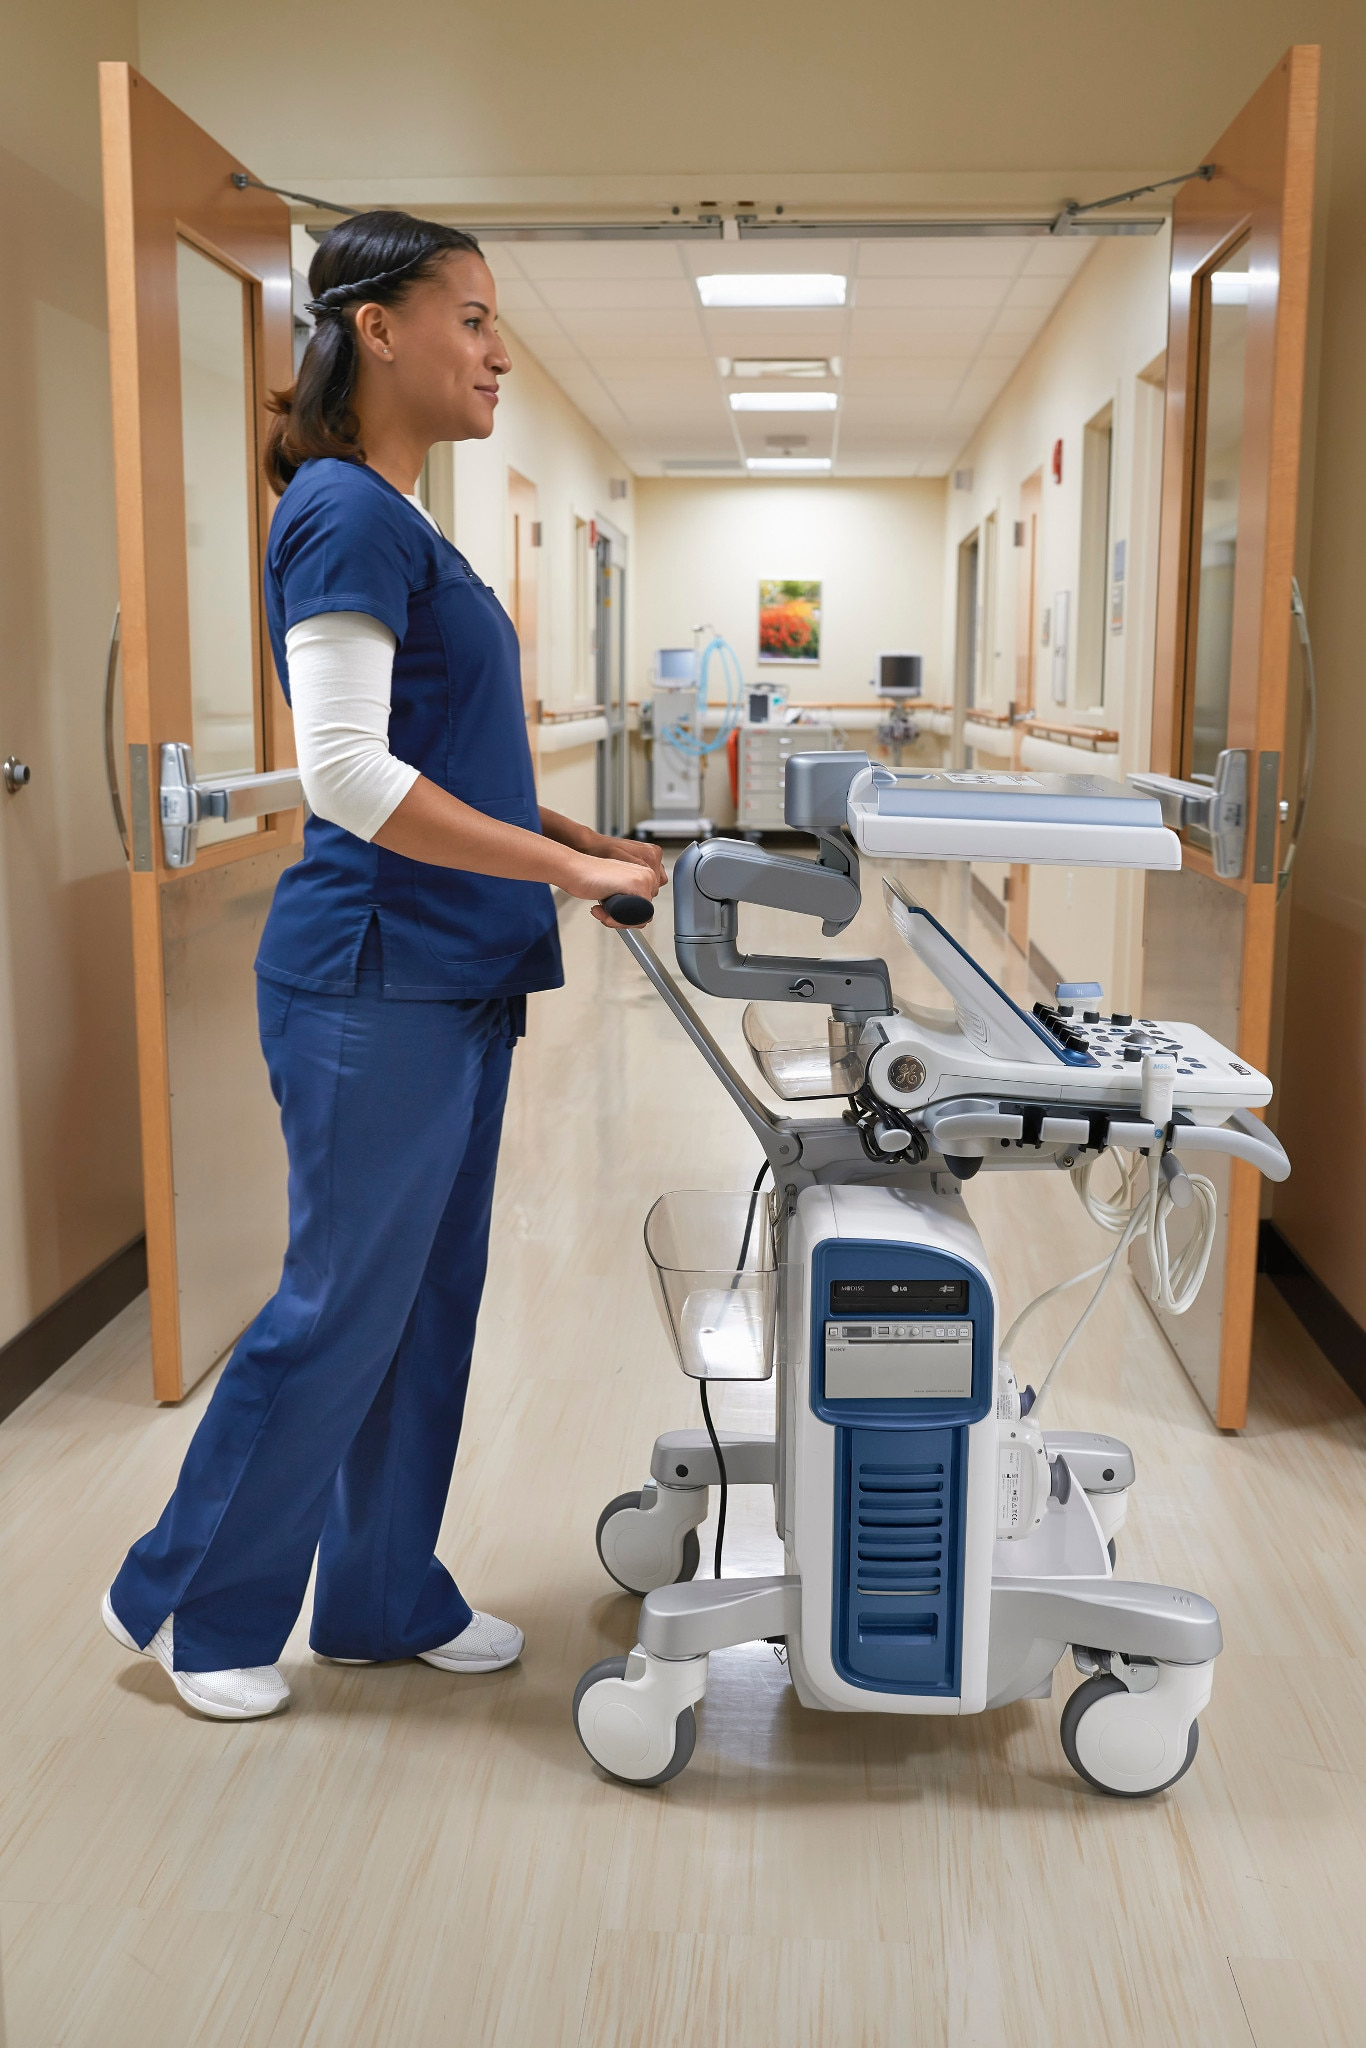 product-product-categories-ultrasound-vivid-vivid s60-gehc_vivid_s60_ergonomics_new.jpg